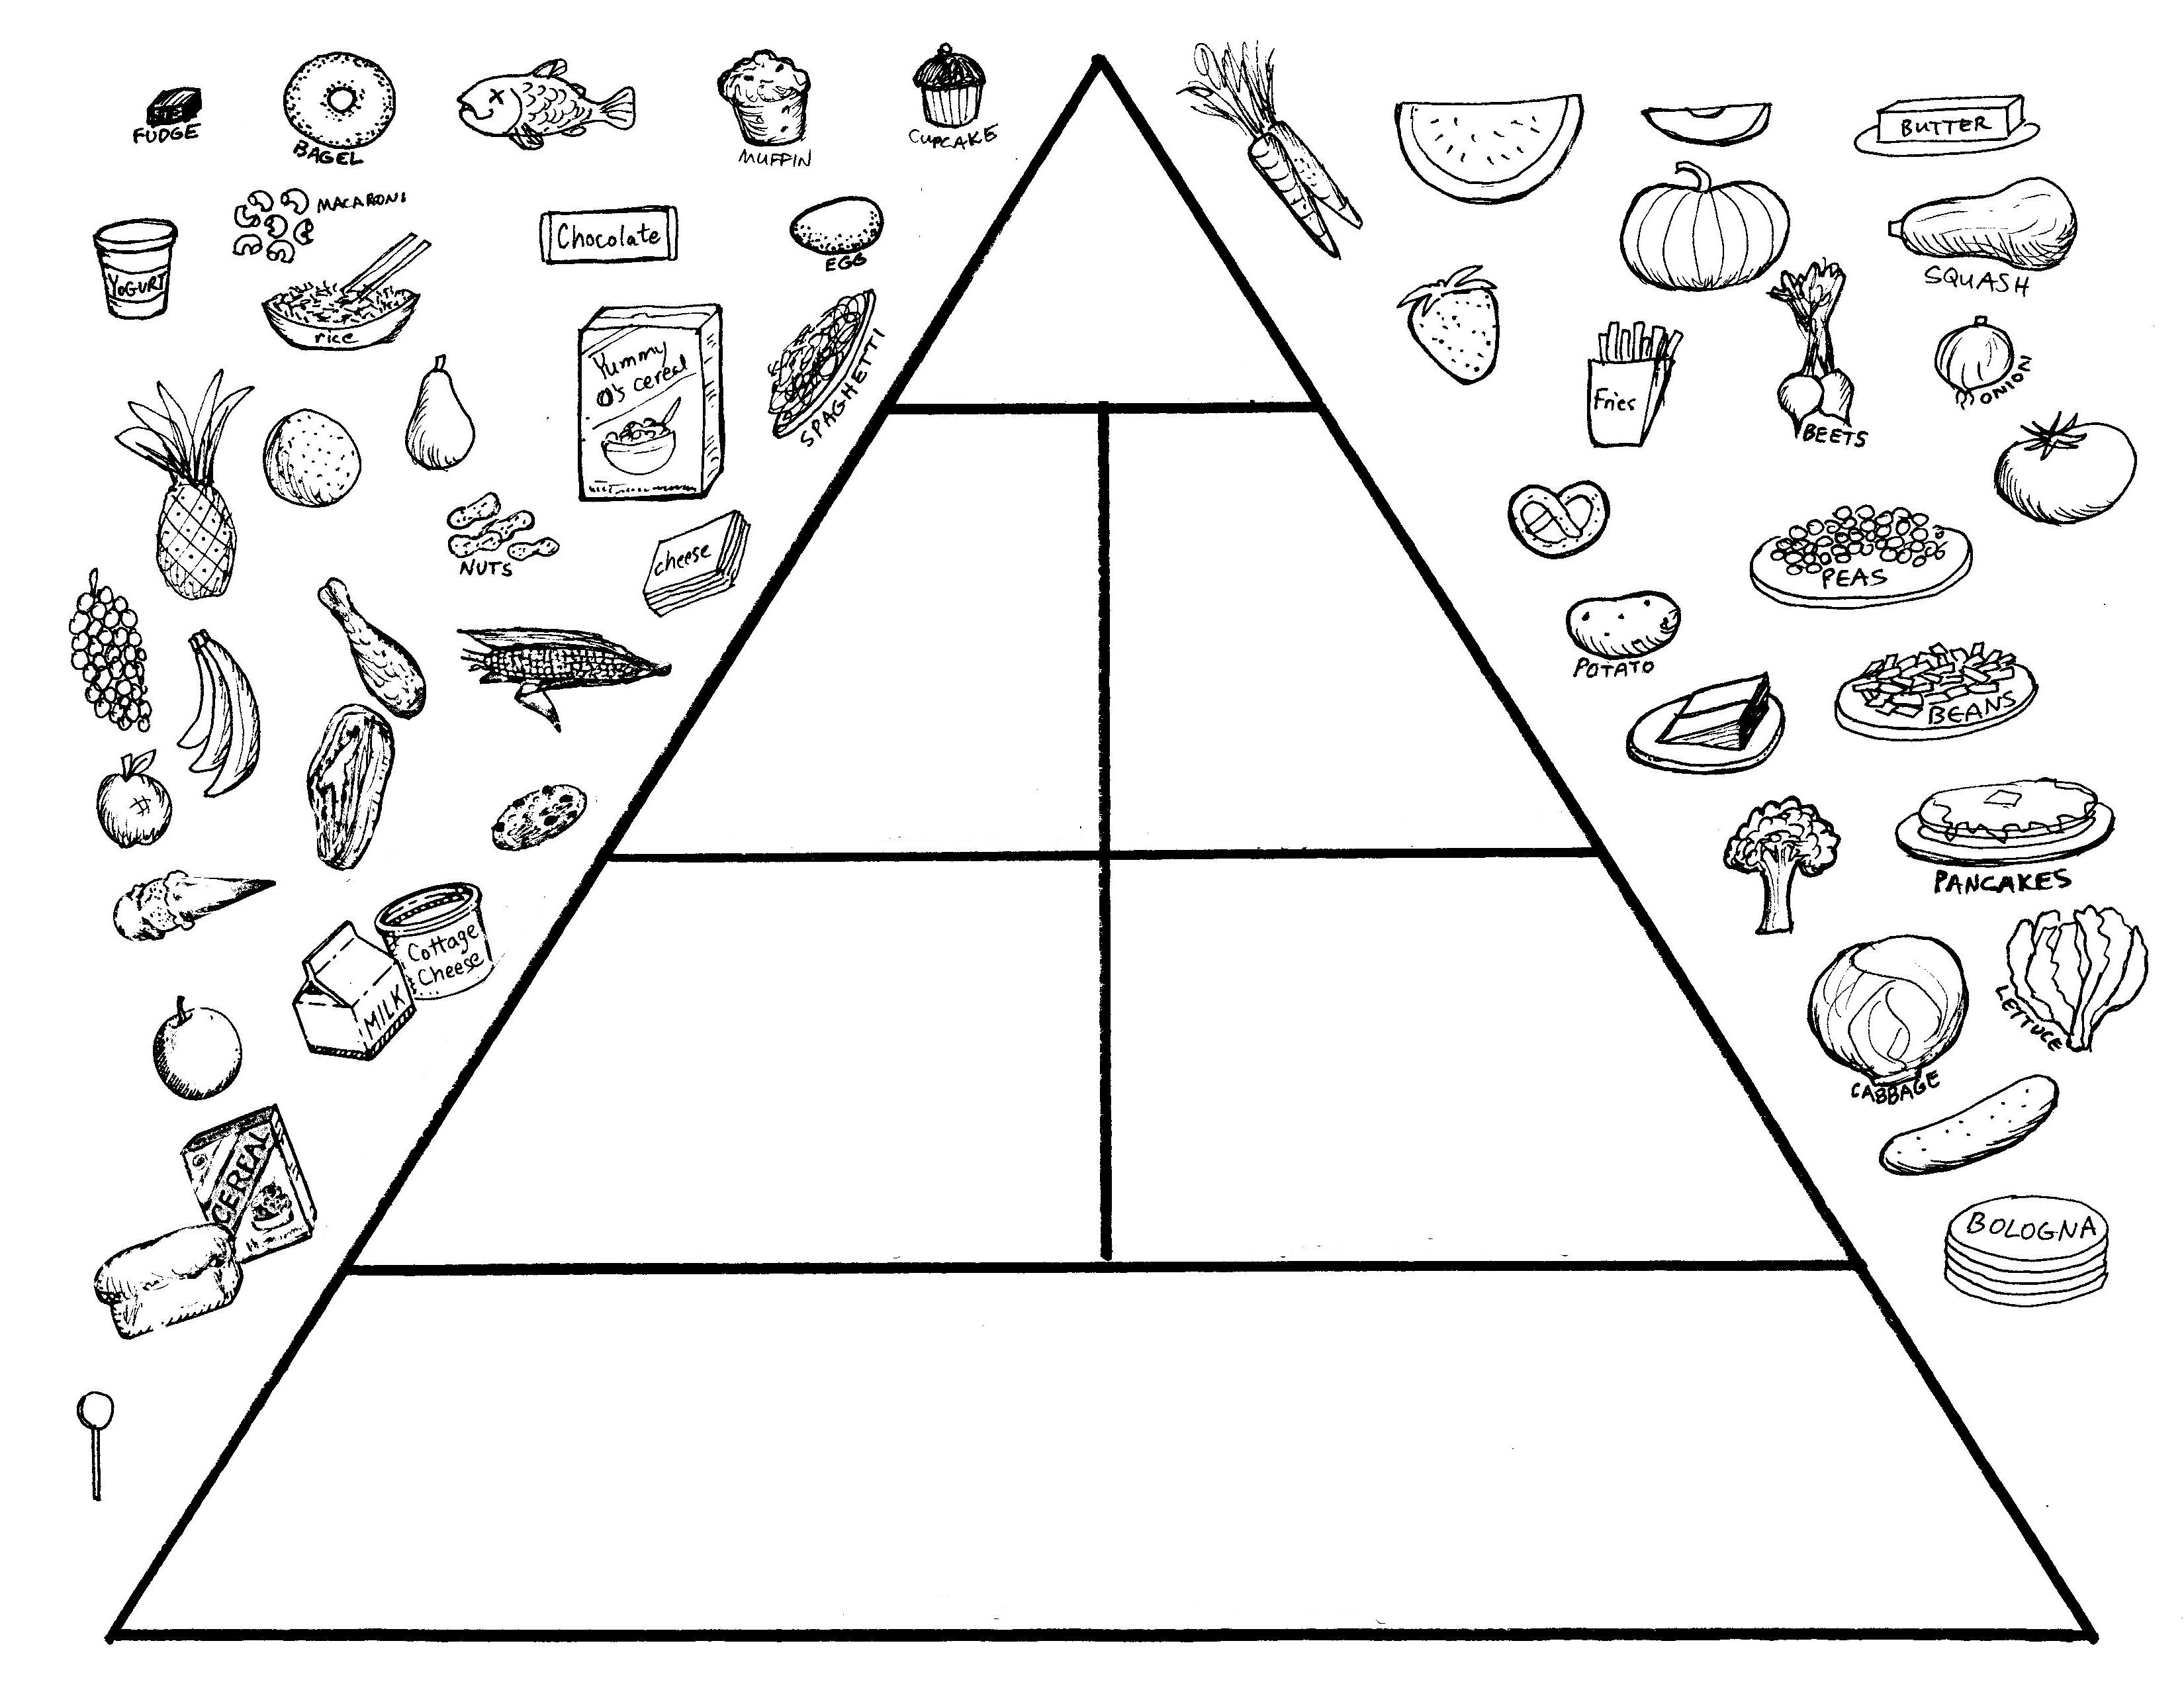 Cut and Paste Food Pyramid Game